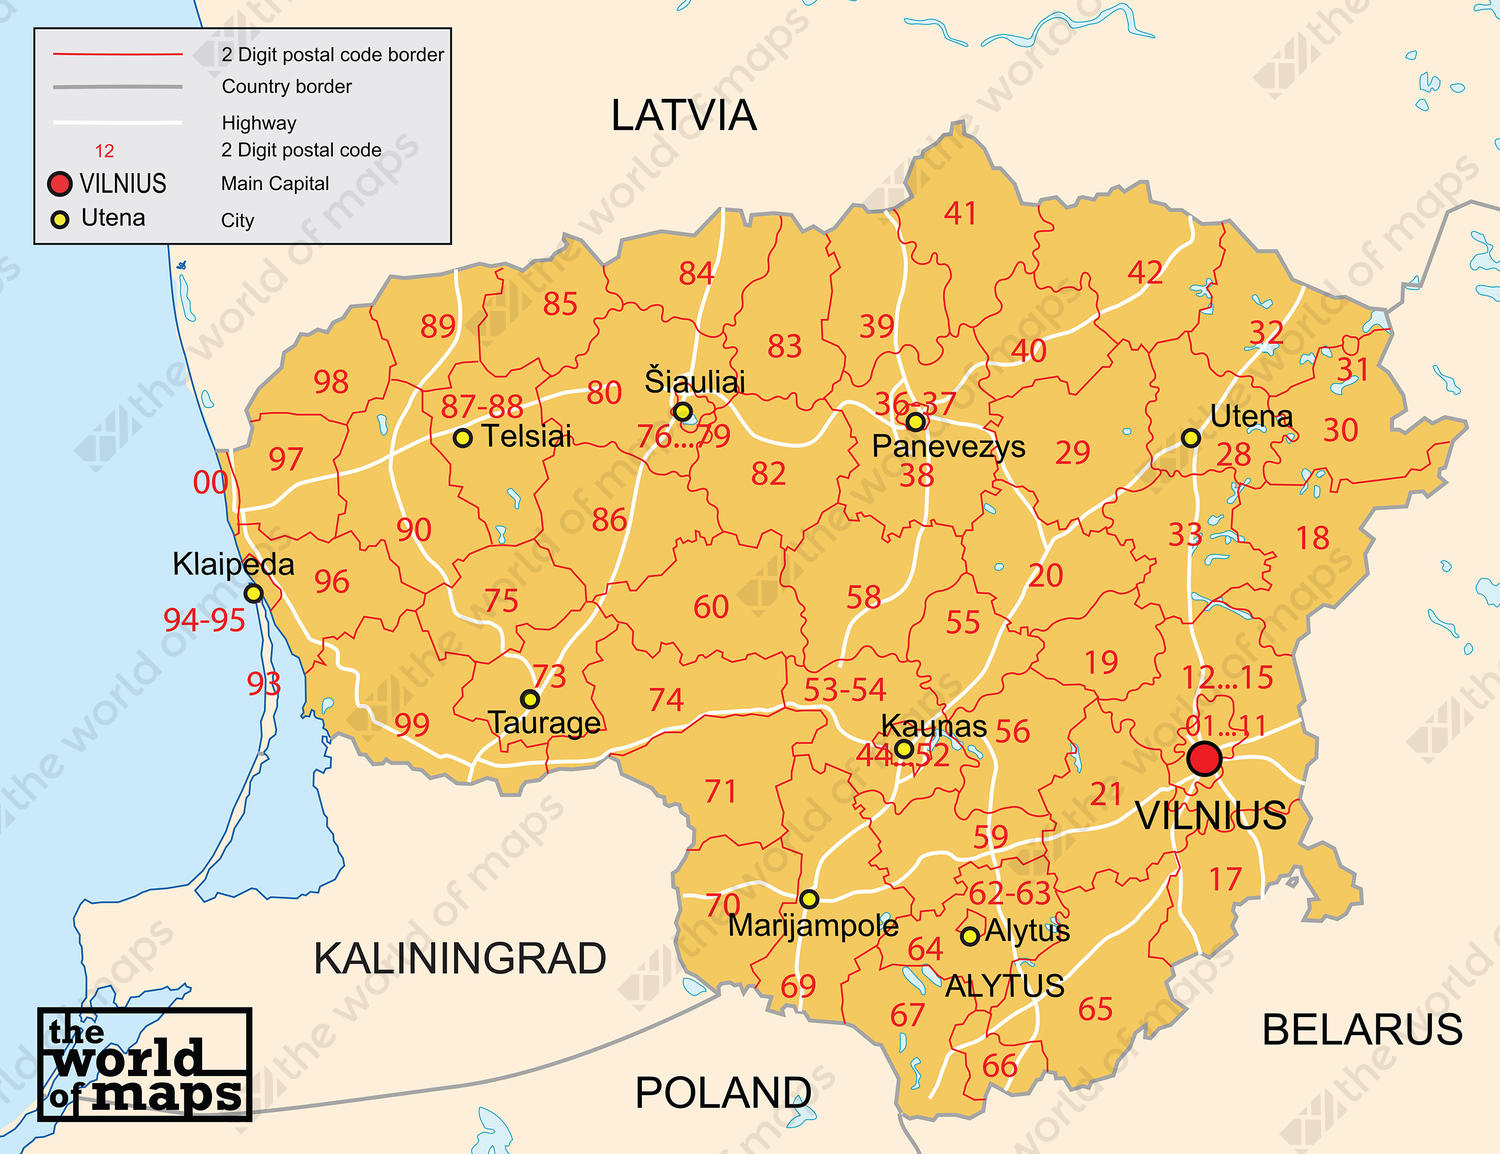 Digital postcode map Lithuania 2-digit 88 | The World of Maps.com